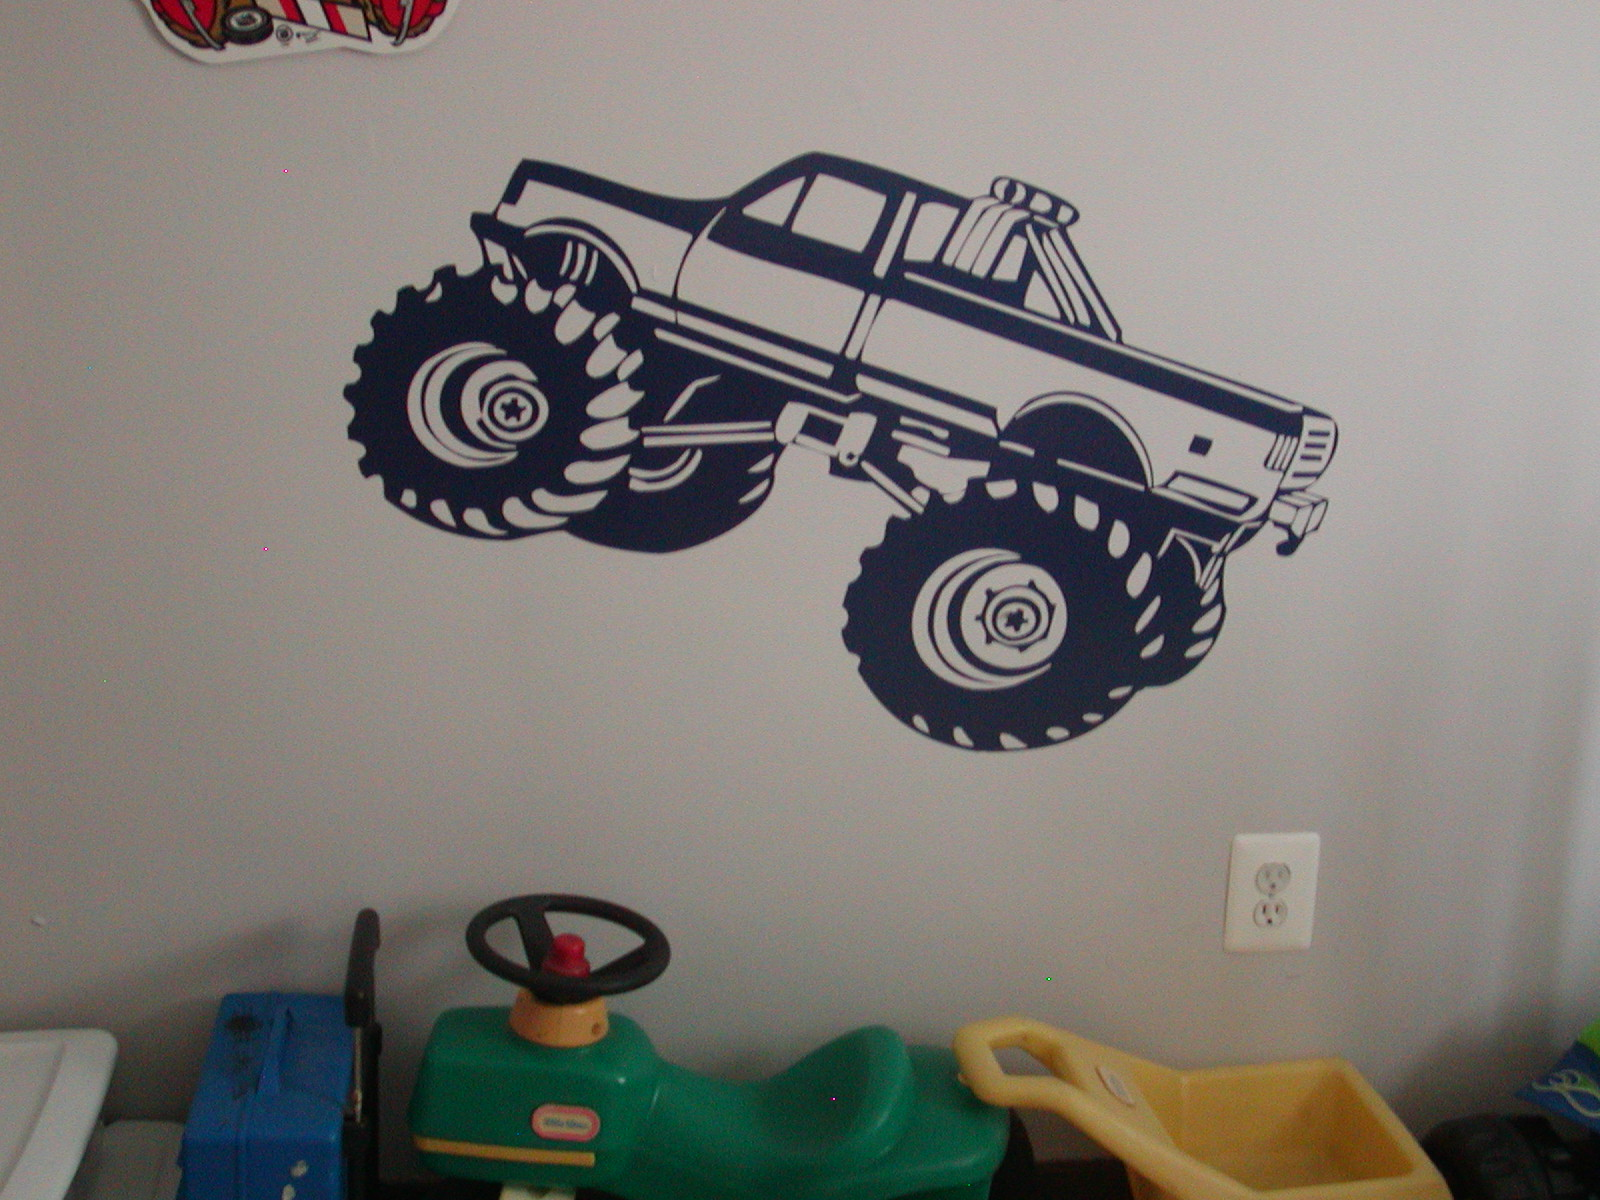 �MONSTER TRUCK (Big Foot) Wall Garage or Garage Door Graphic Decal